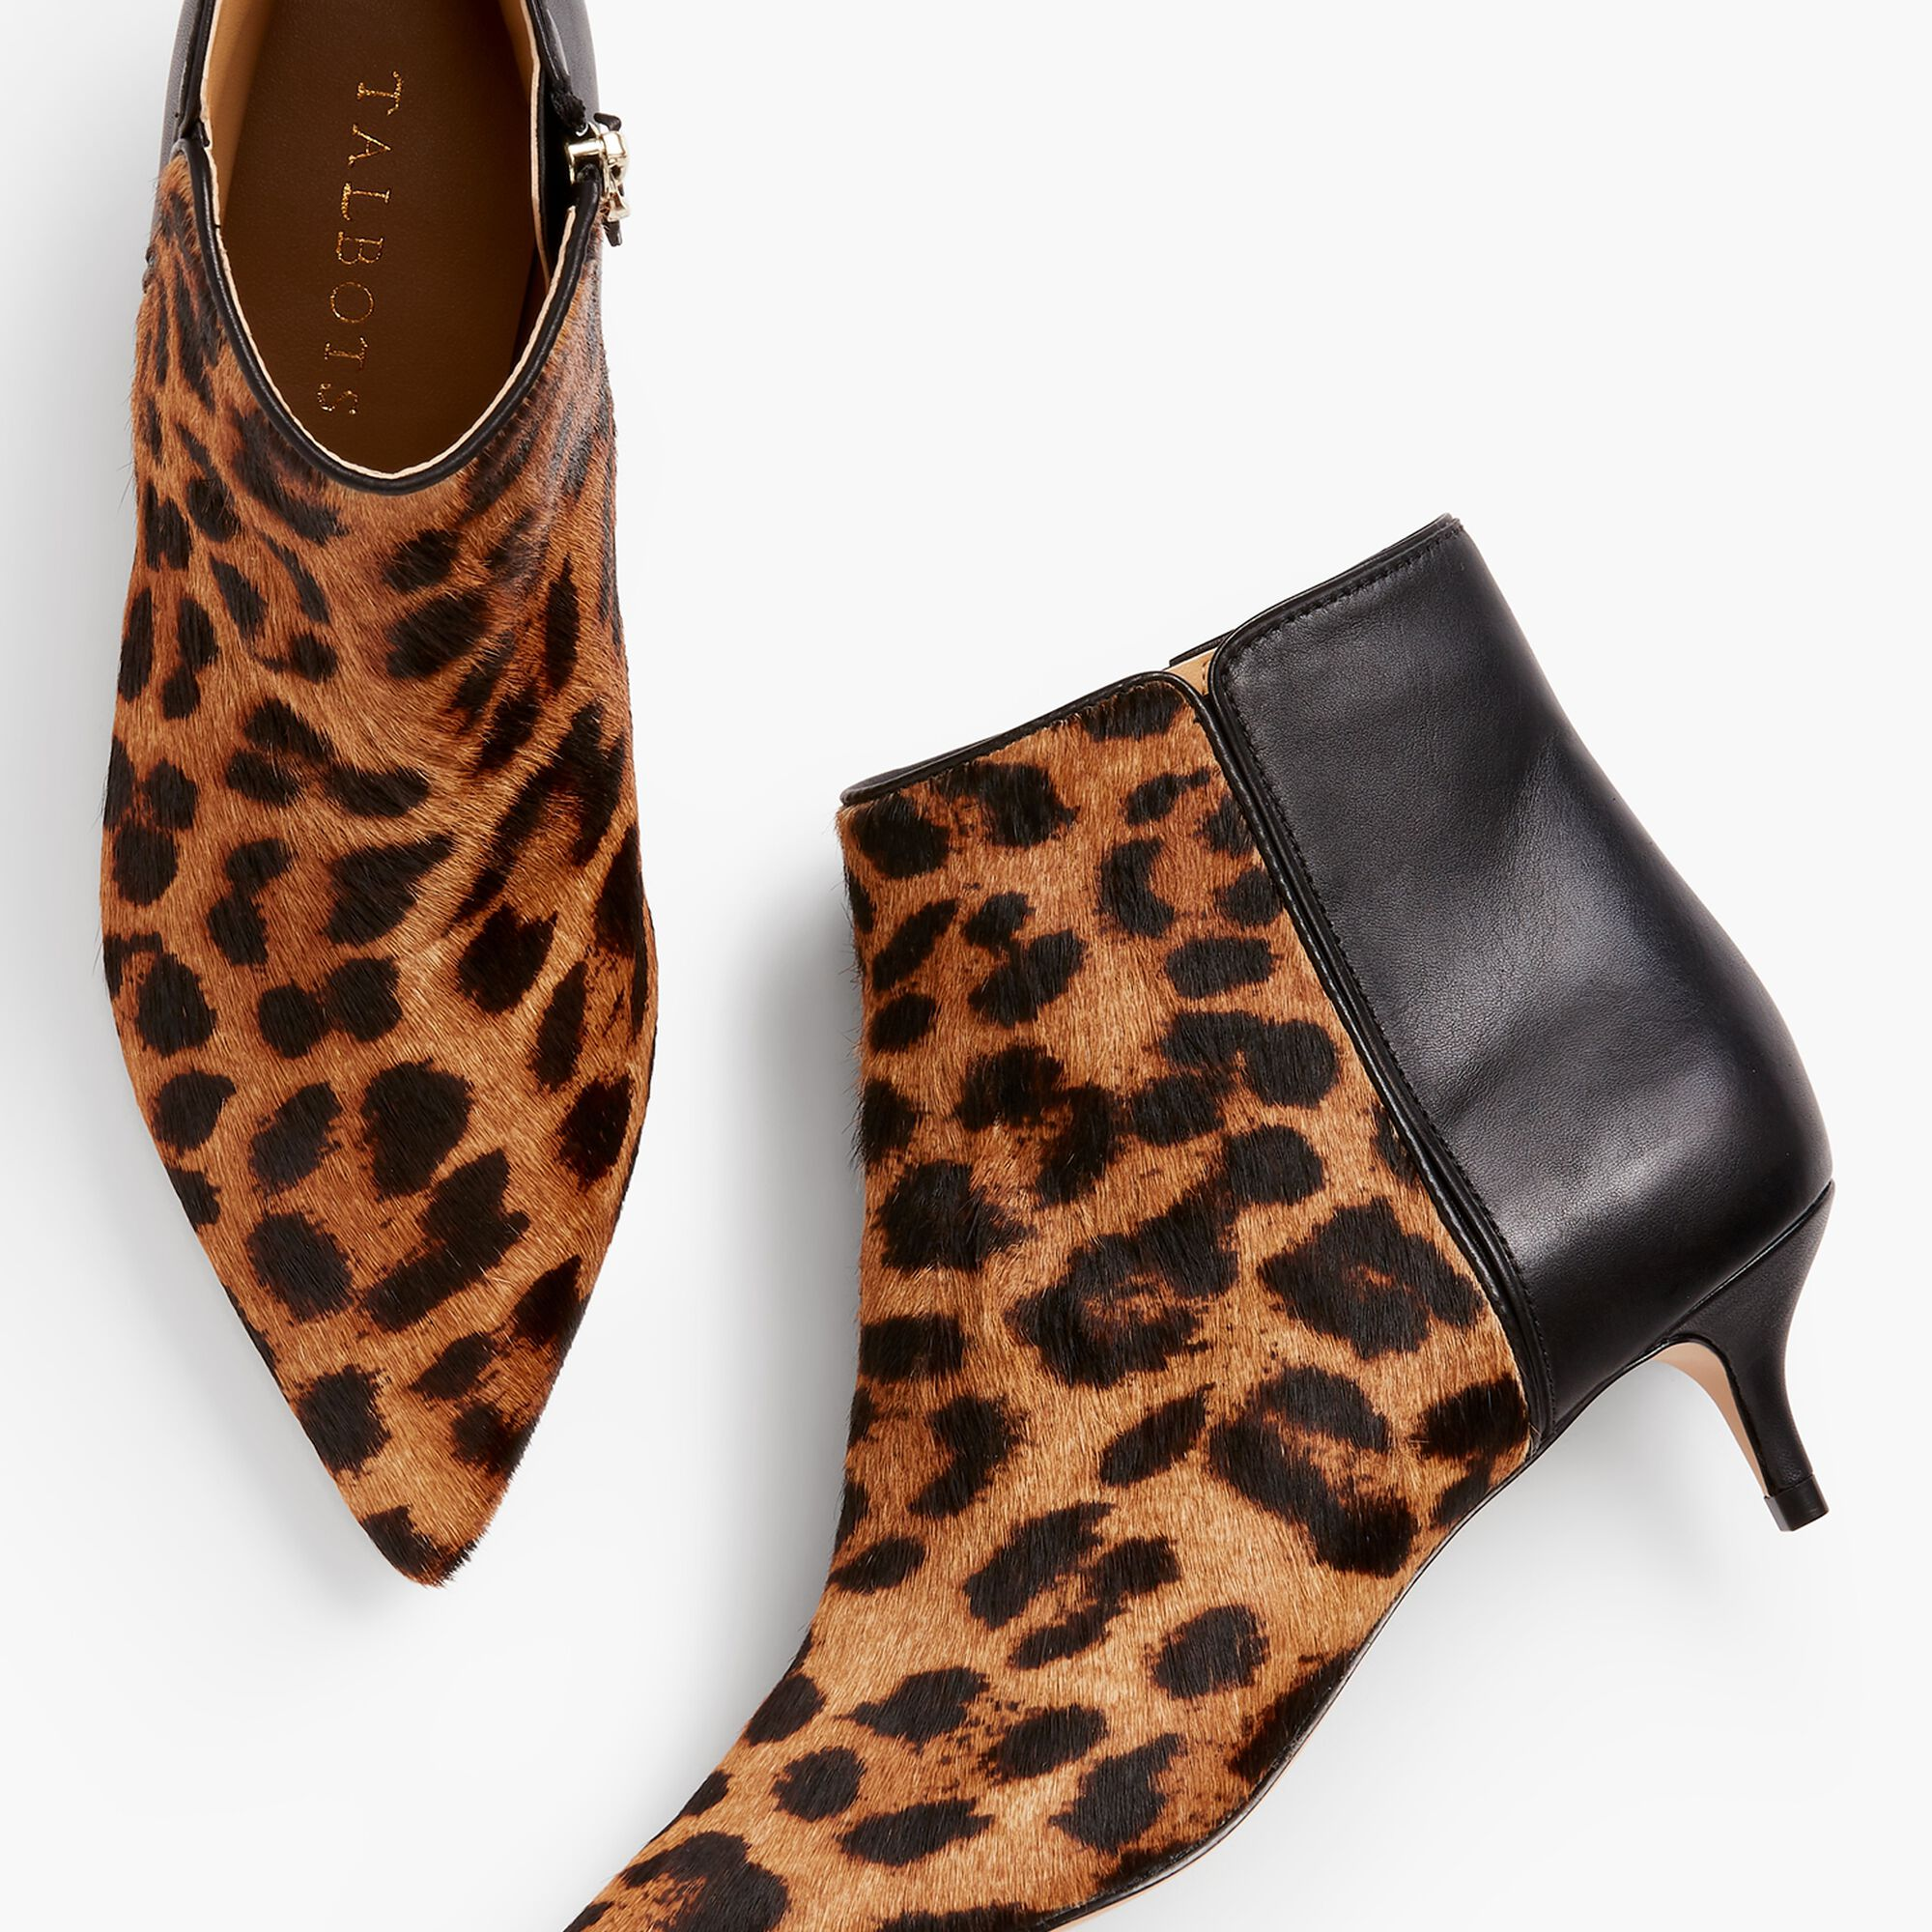 a71dadf62d90 Iona Kitten Heel Ankle Boots-Haircalf Opens a New Window.